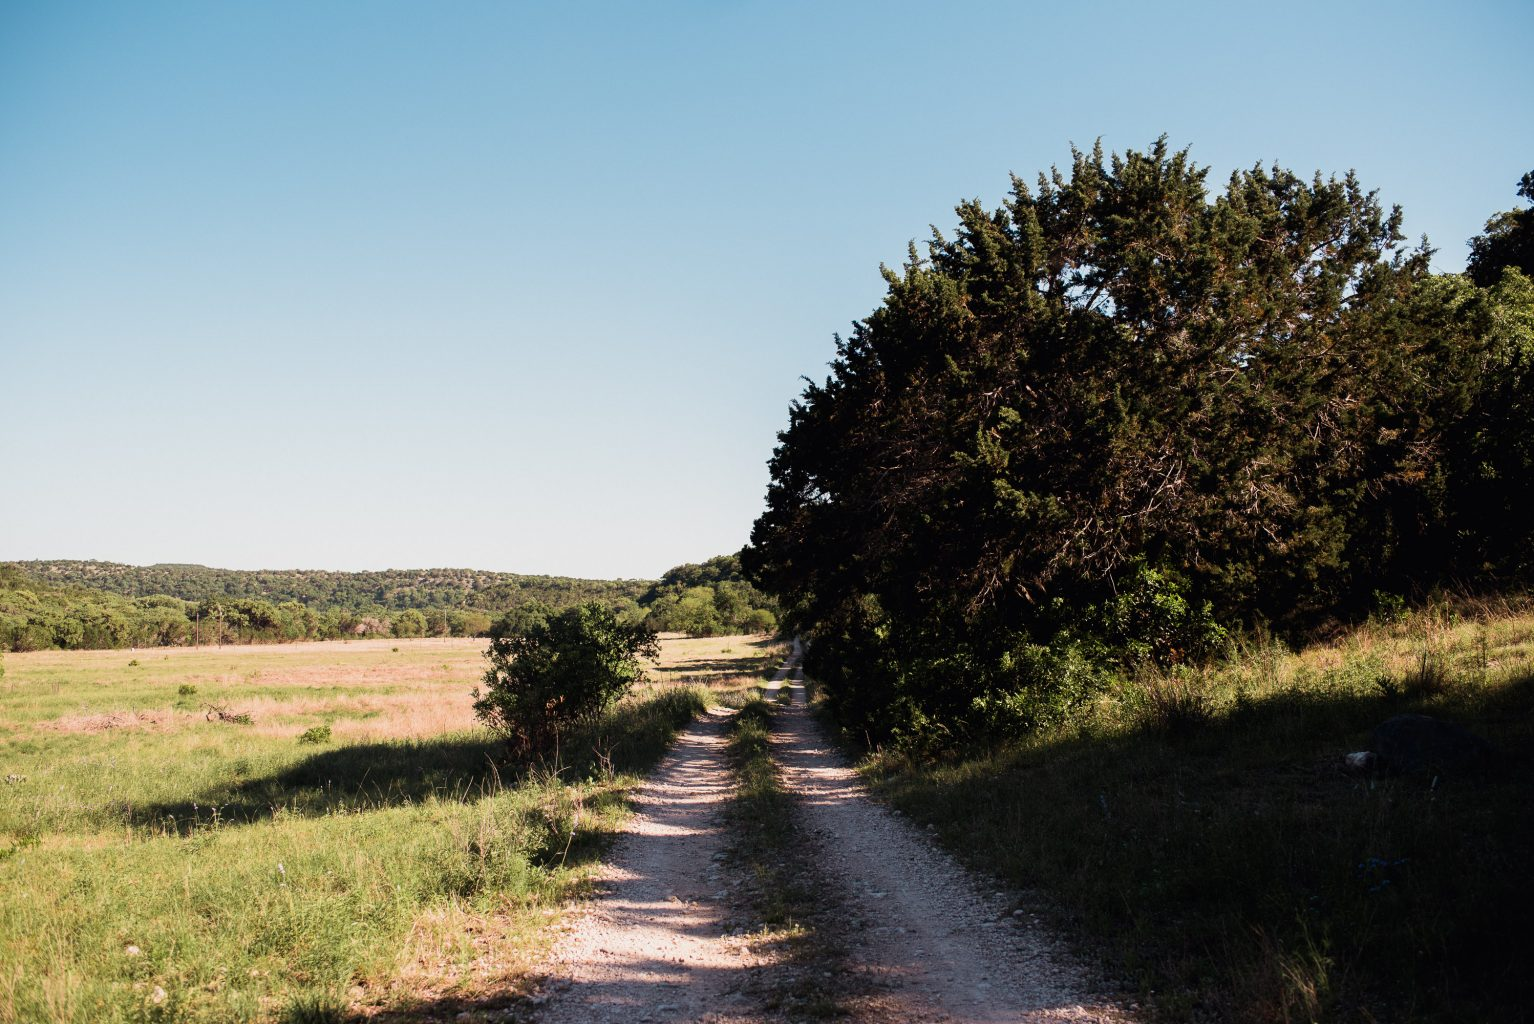 view down a dirt road on the way to a wedding in Utopia Texas